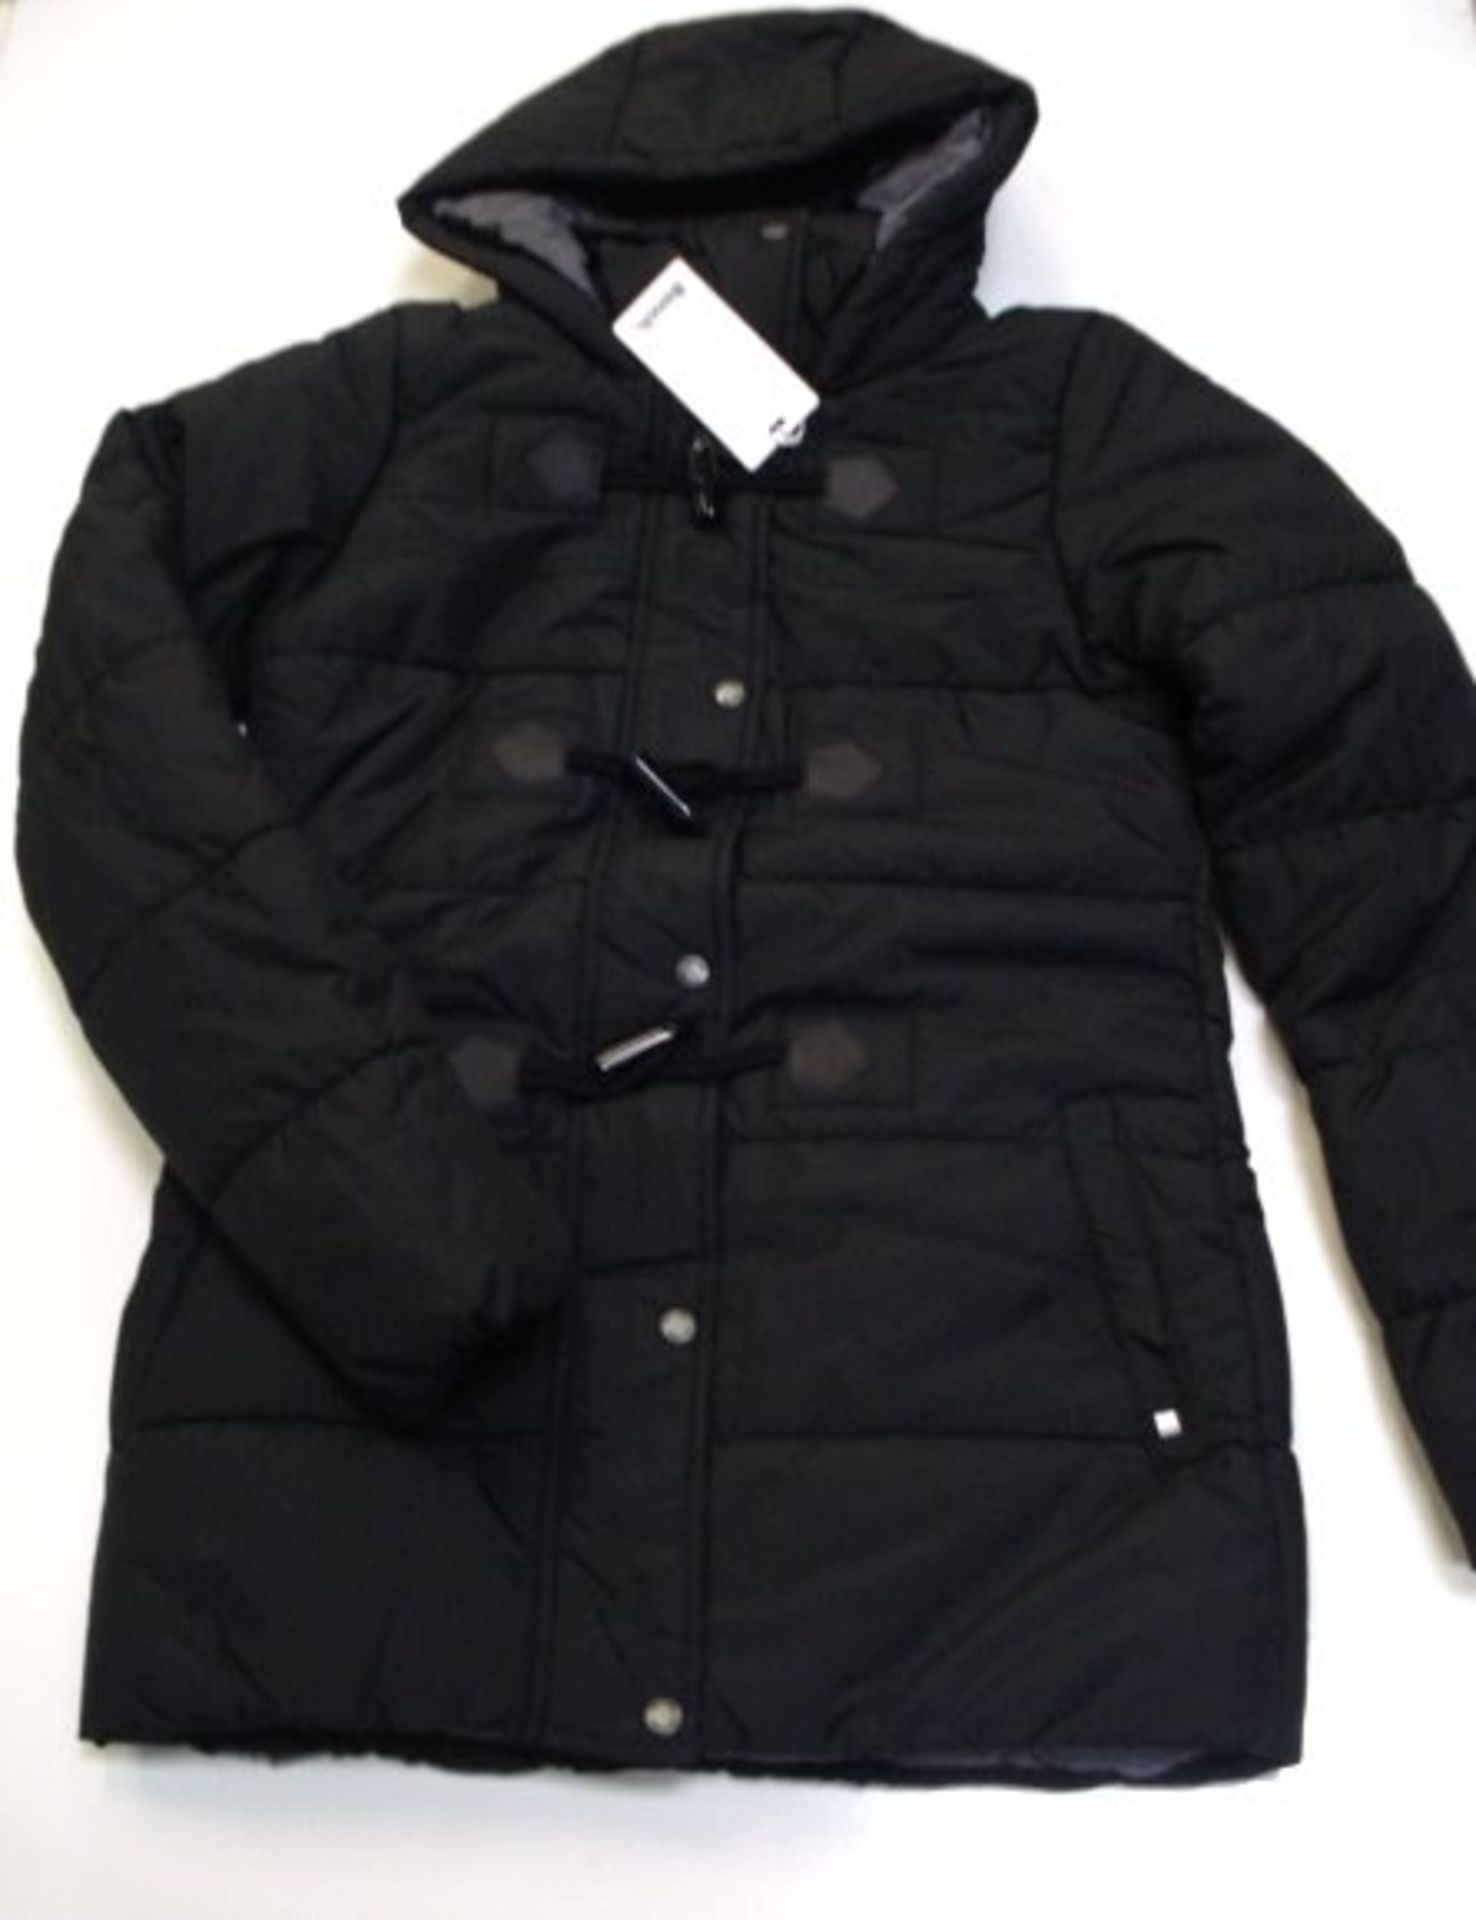 Women's Bench Brooker Hooded Padded Style Jacket with Toggle Fastening